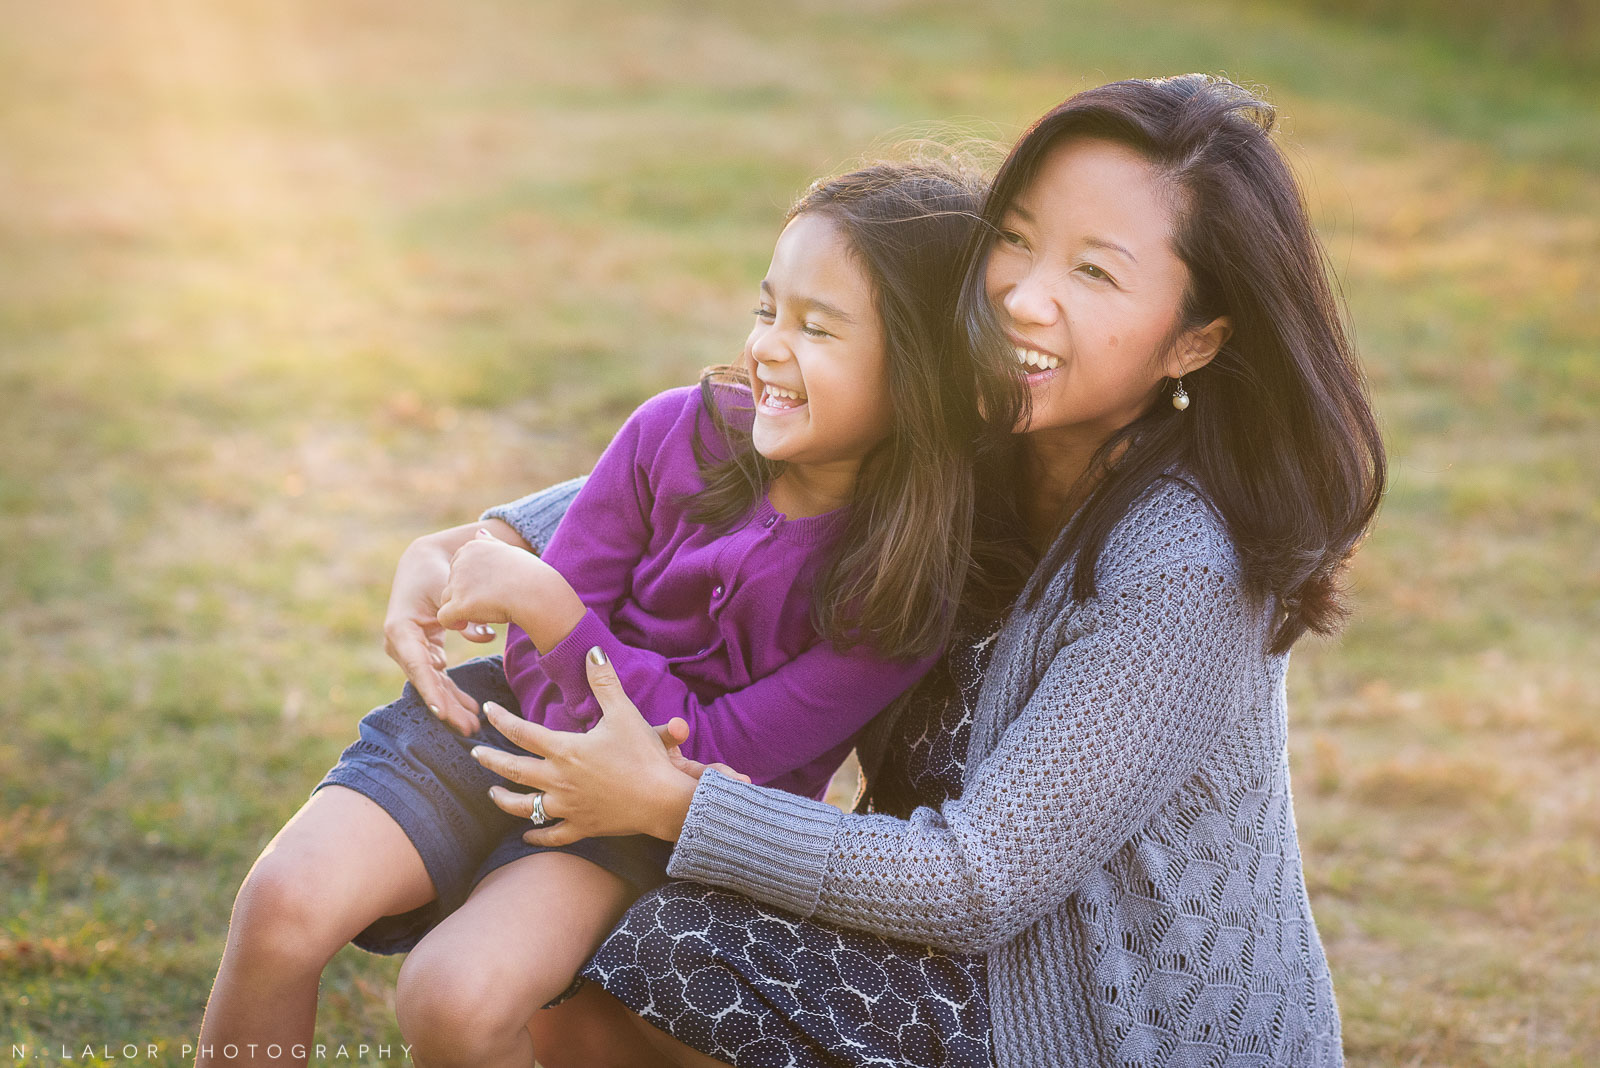 Laughing Mom and Daughter. Lifestyle portrait by N. Lalor Photography.